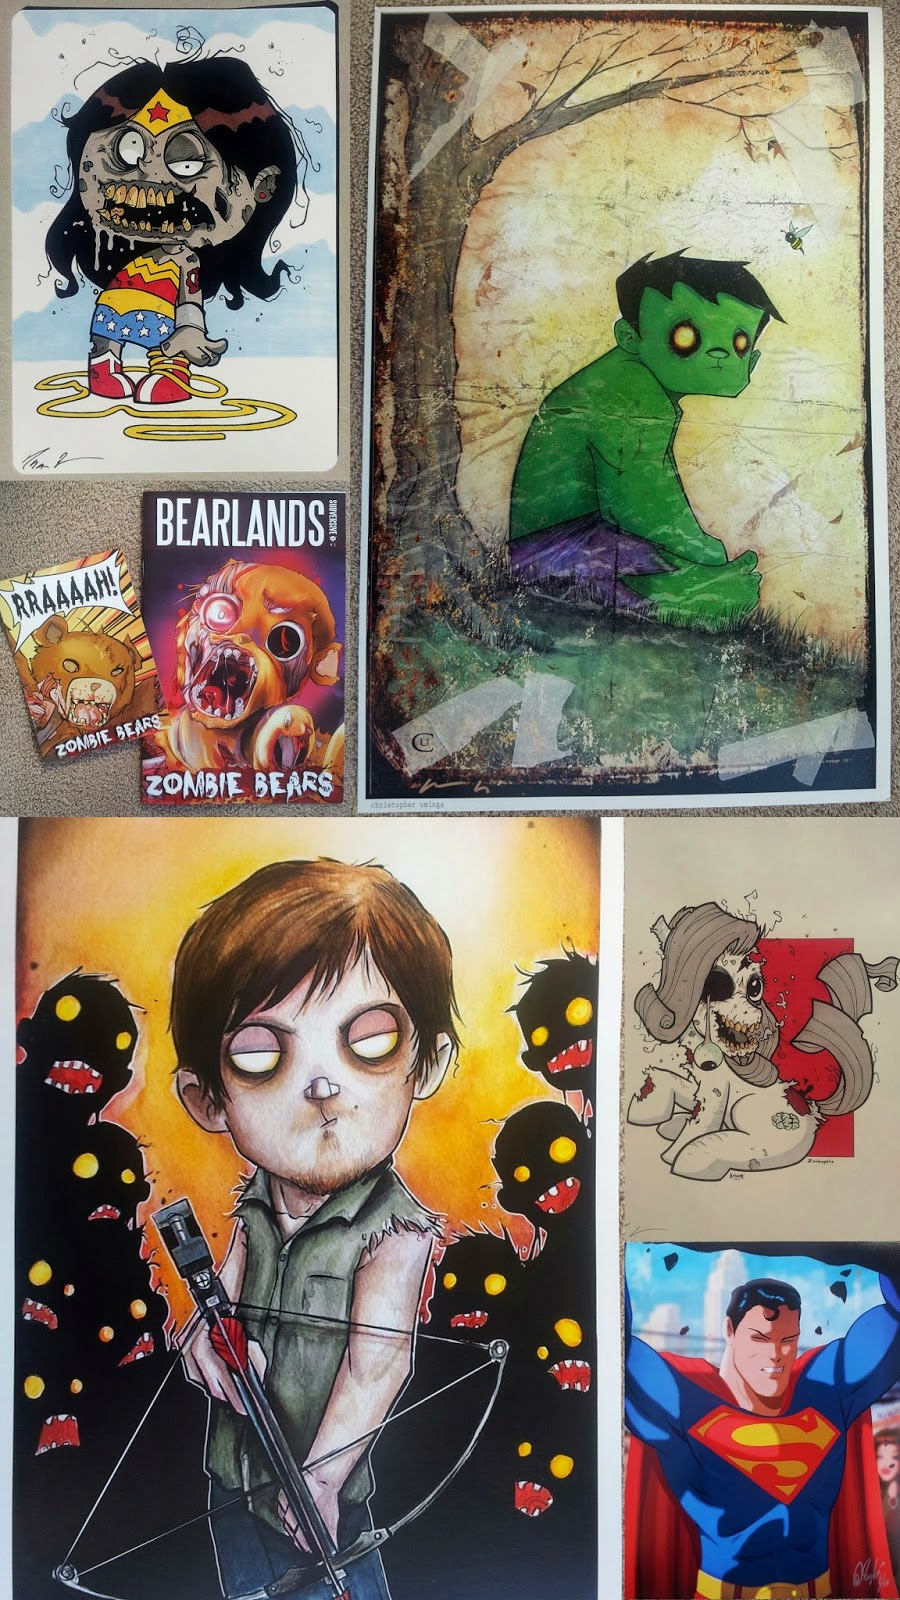 Whoopidooings: Rocking my World Friday - Comicon goodies